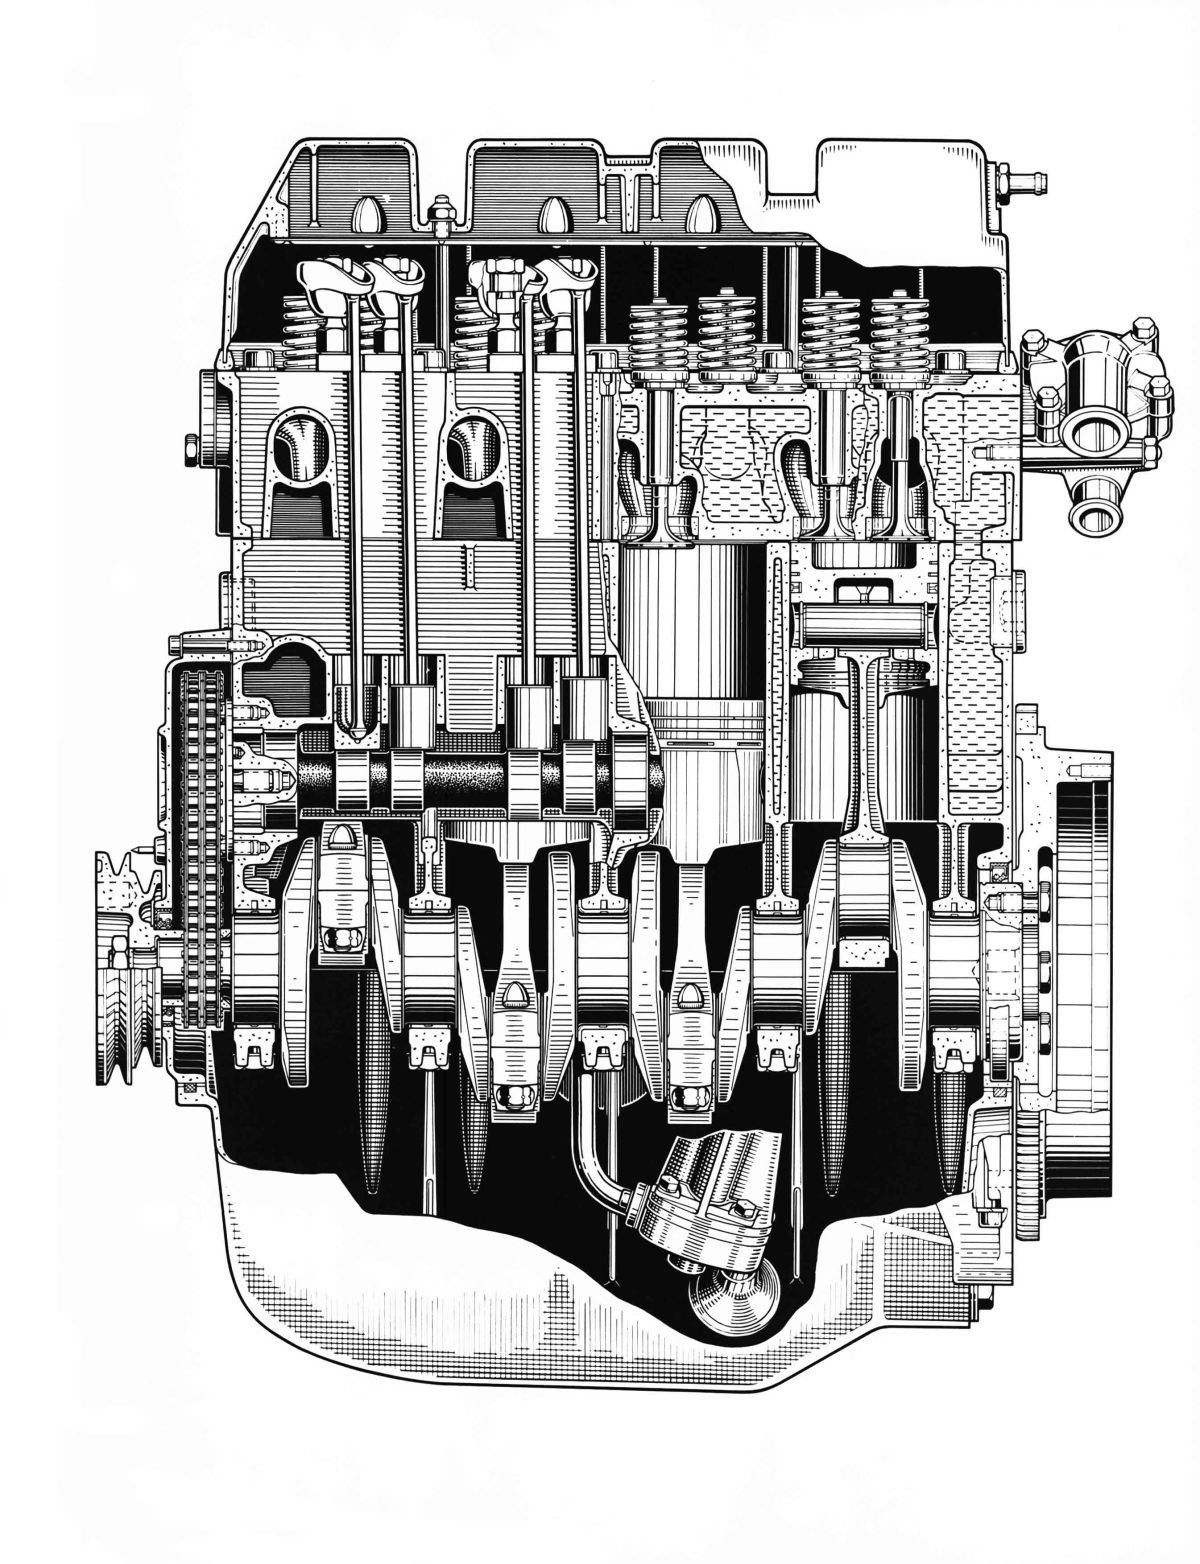 """Mitteldruckmotor"" des ersten Audi, 1965. Die Vierzylinder-Konstruktion geht auf die Mercedes-Benz Entwicklung M 118 zurück. ""Medium pressure engine"" of the first Audi, 1965. The four-cylinder design was based on development of the Mercedes-Benz M 118."